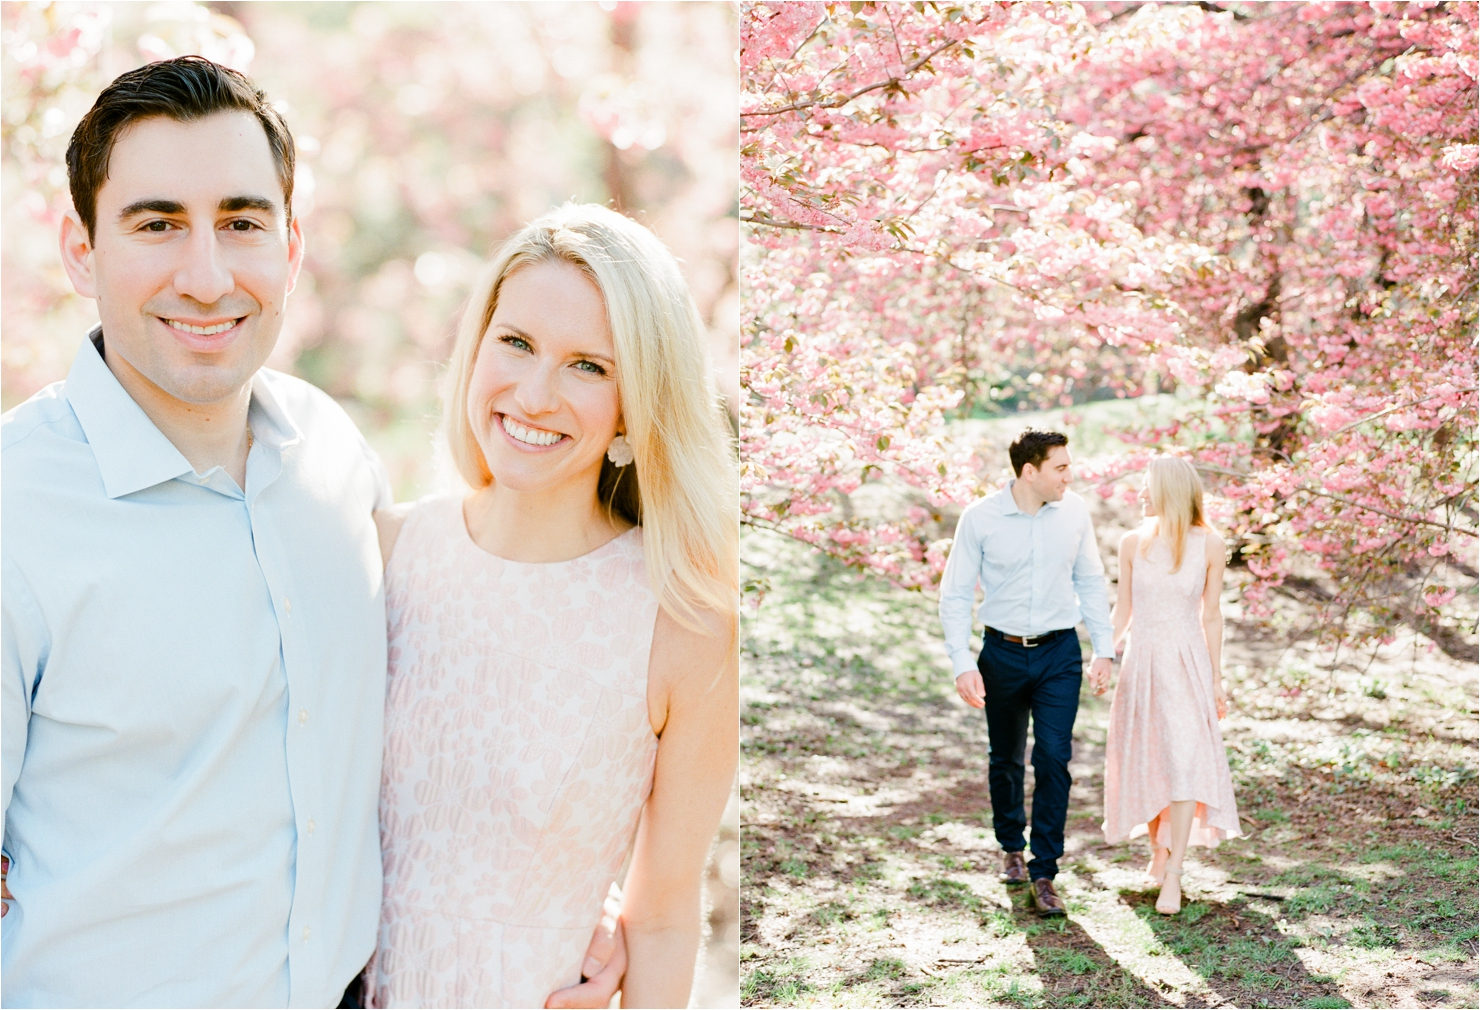 Bride Wearing Pink Dress in front of Cherry Blossoms